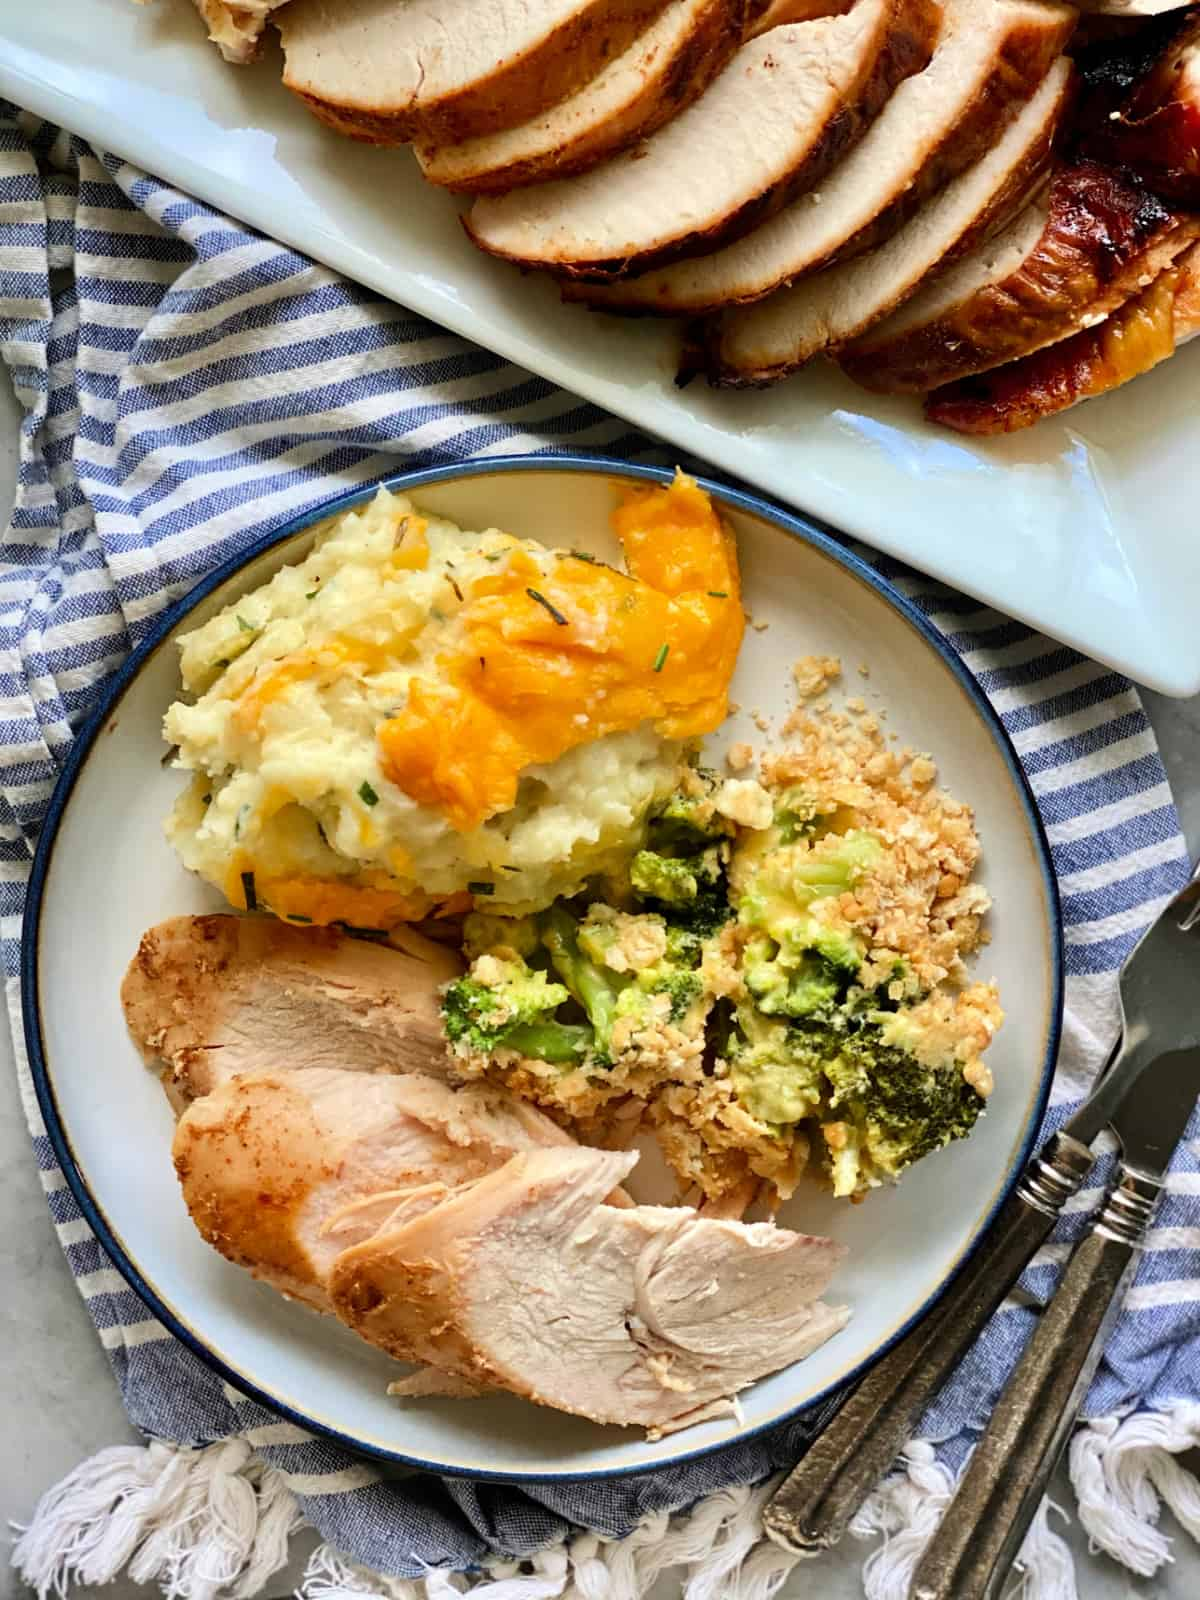 Top view of a plate filled with three slices of turkey bresat, mashed potatoes, and casserole with a platter of sliced turkey on the side.